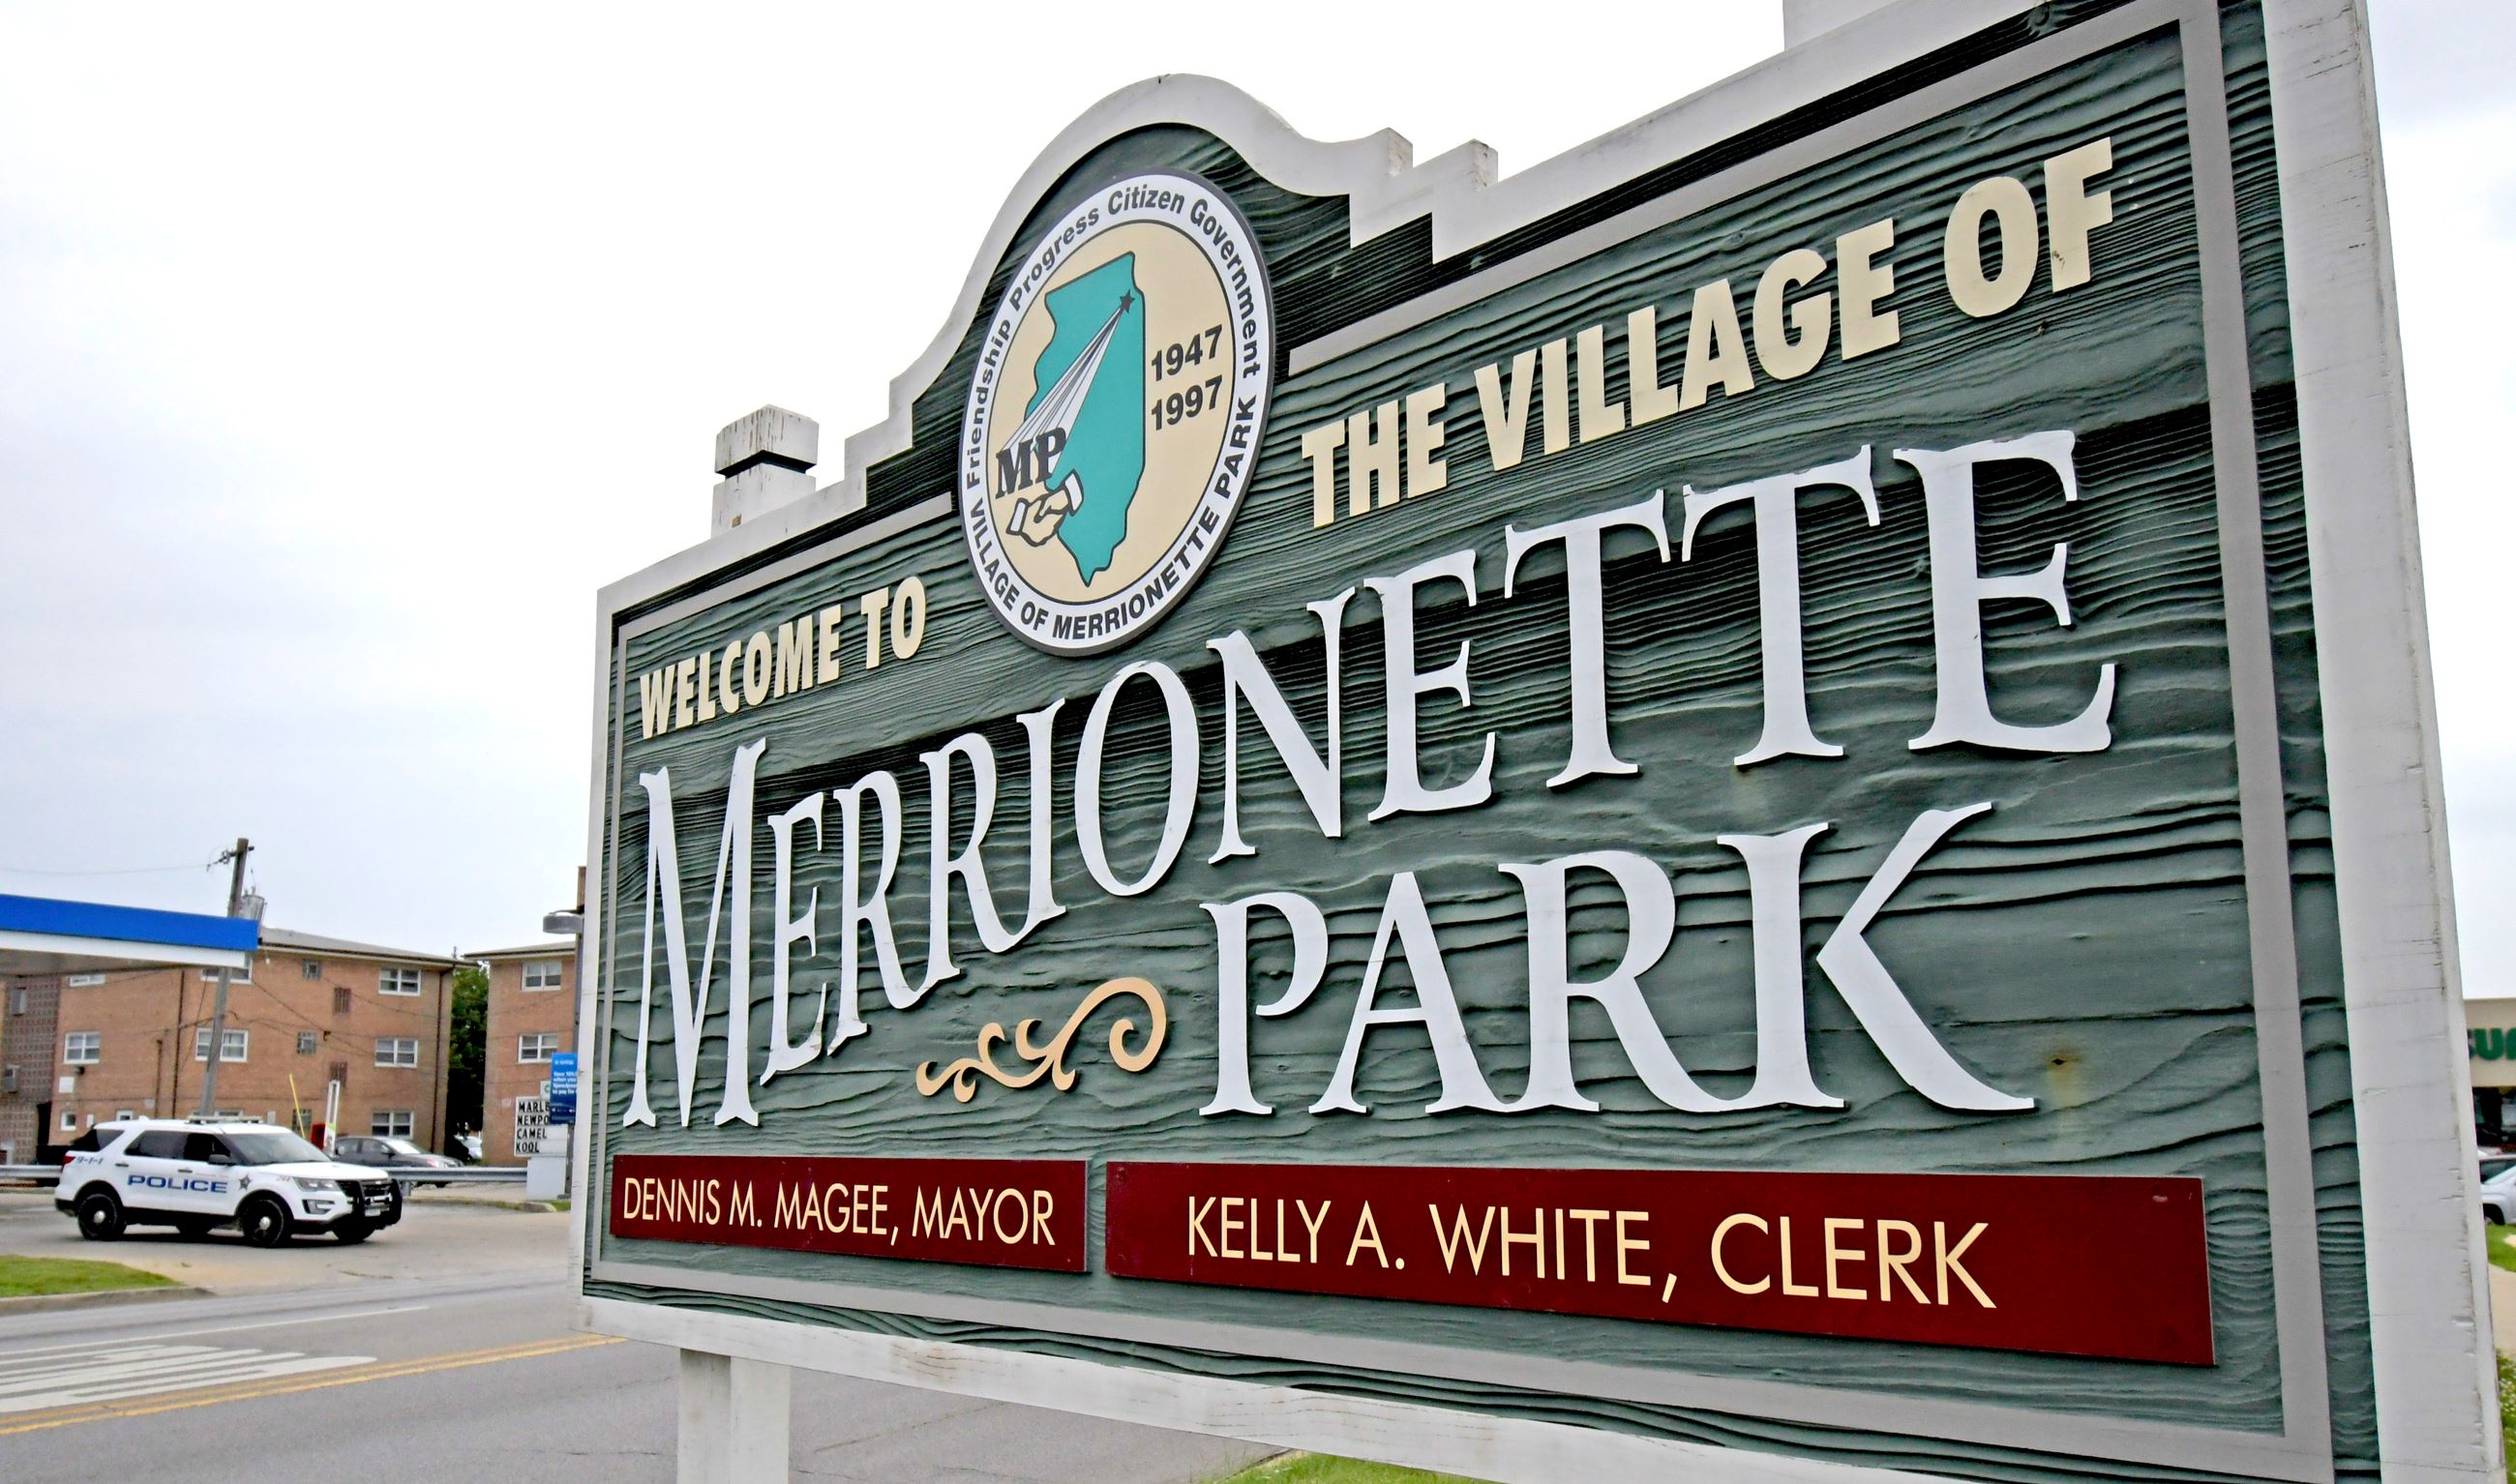 Close up of Welcome to Merrionette Park sign